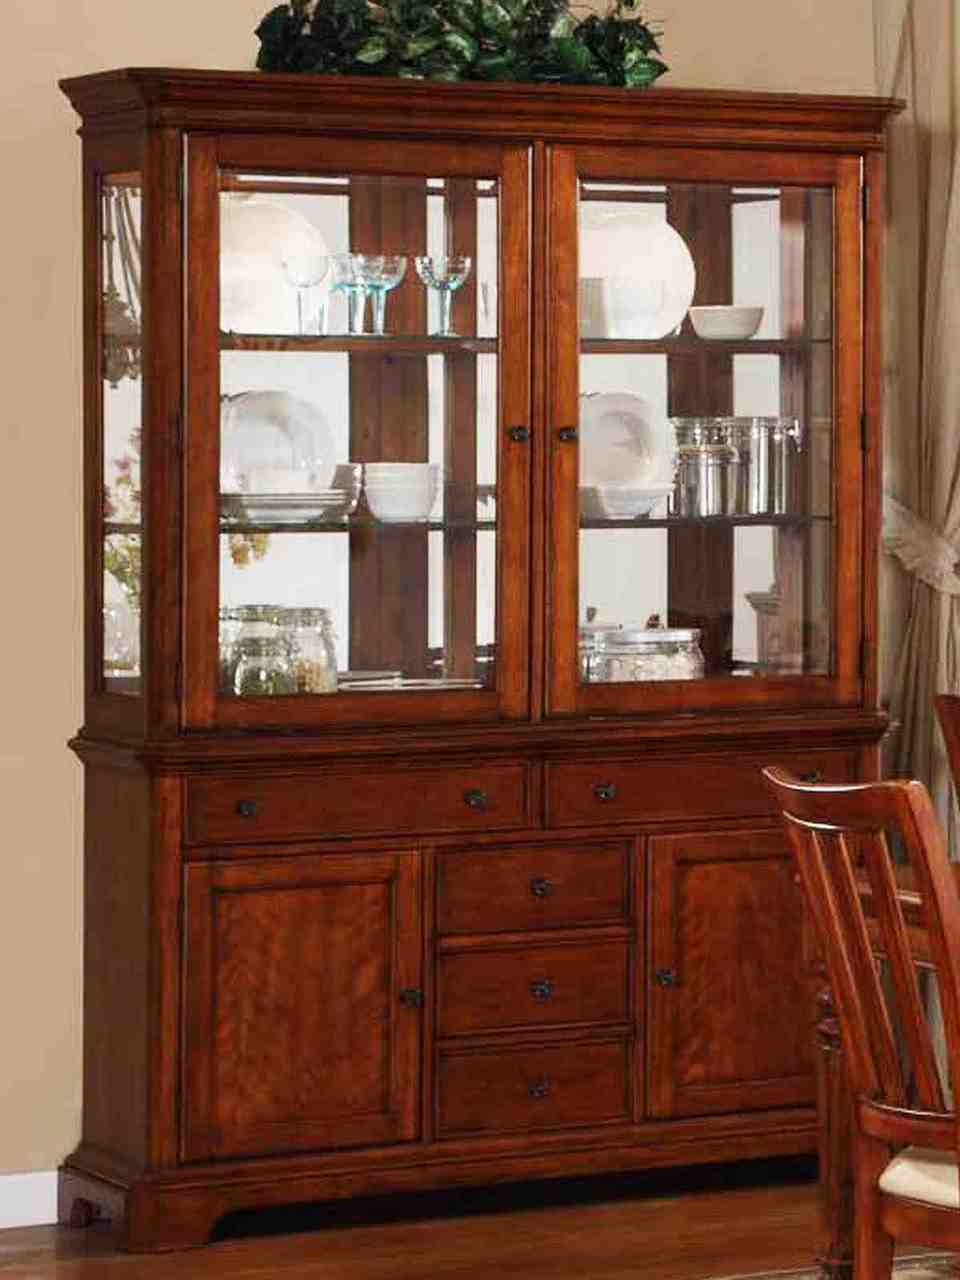 China Cabinet Brings Traditional Style And Storage To Your Dining Room Home Furniture Design